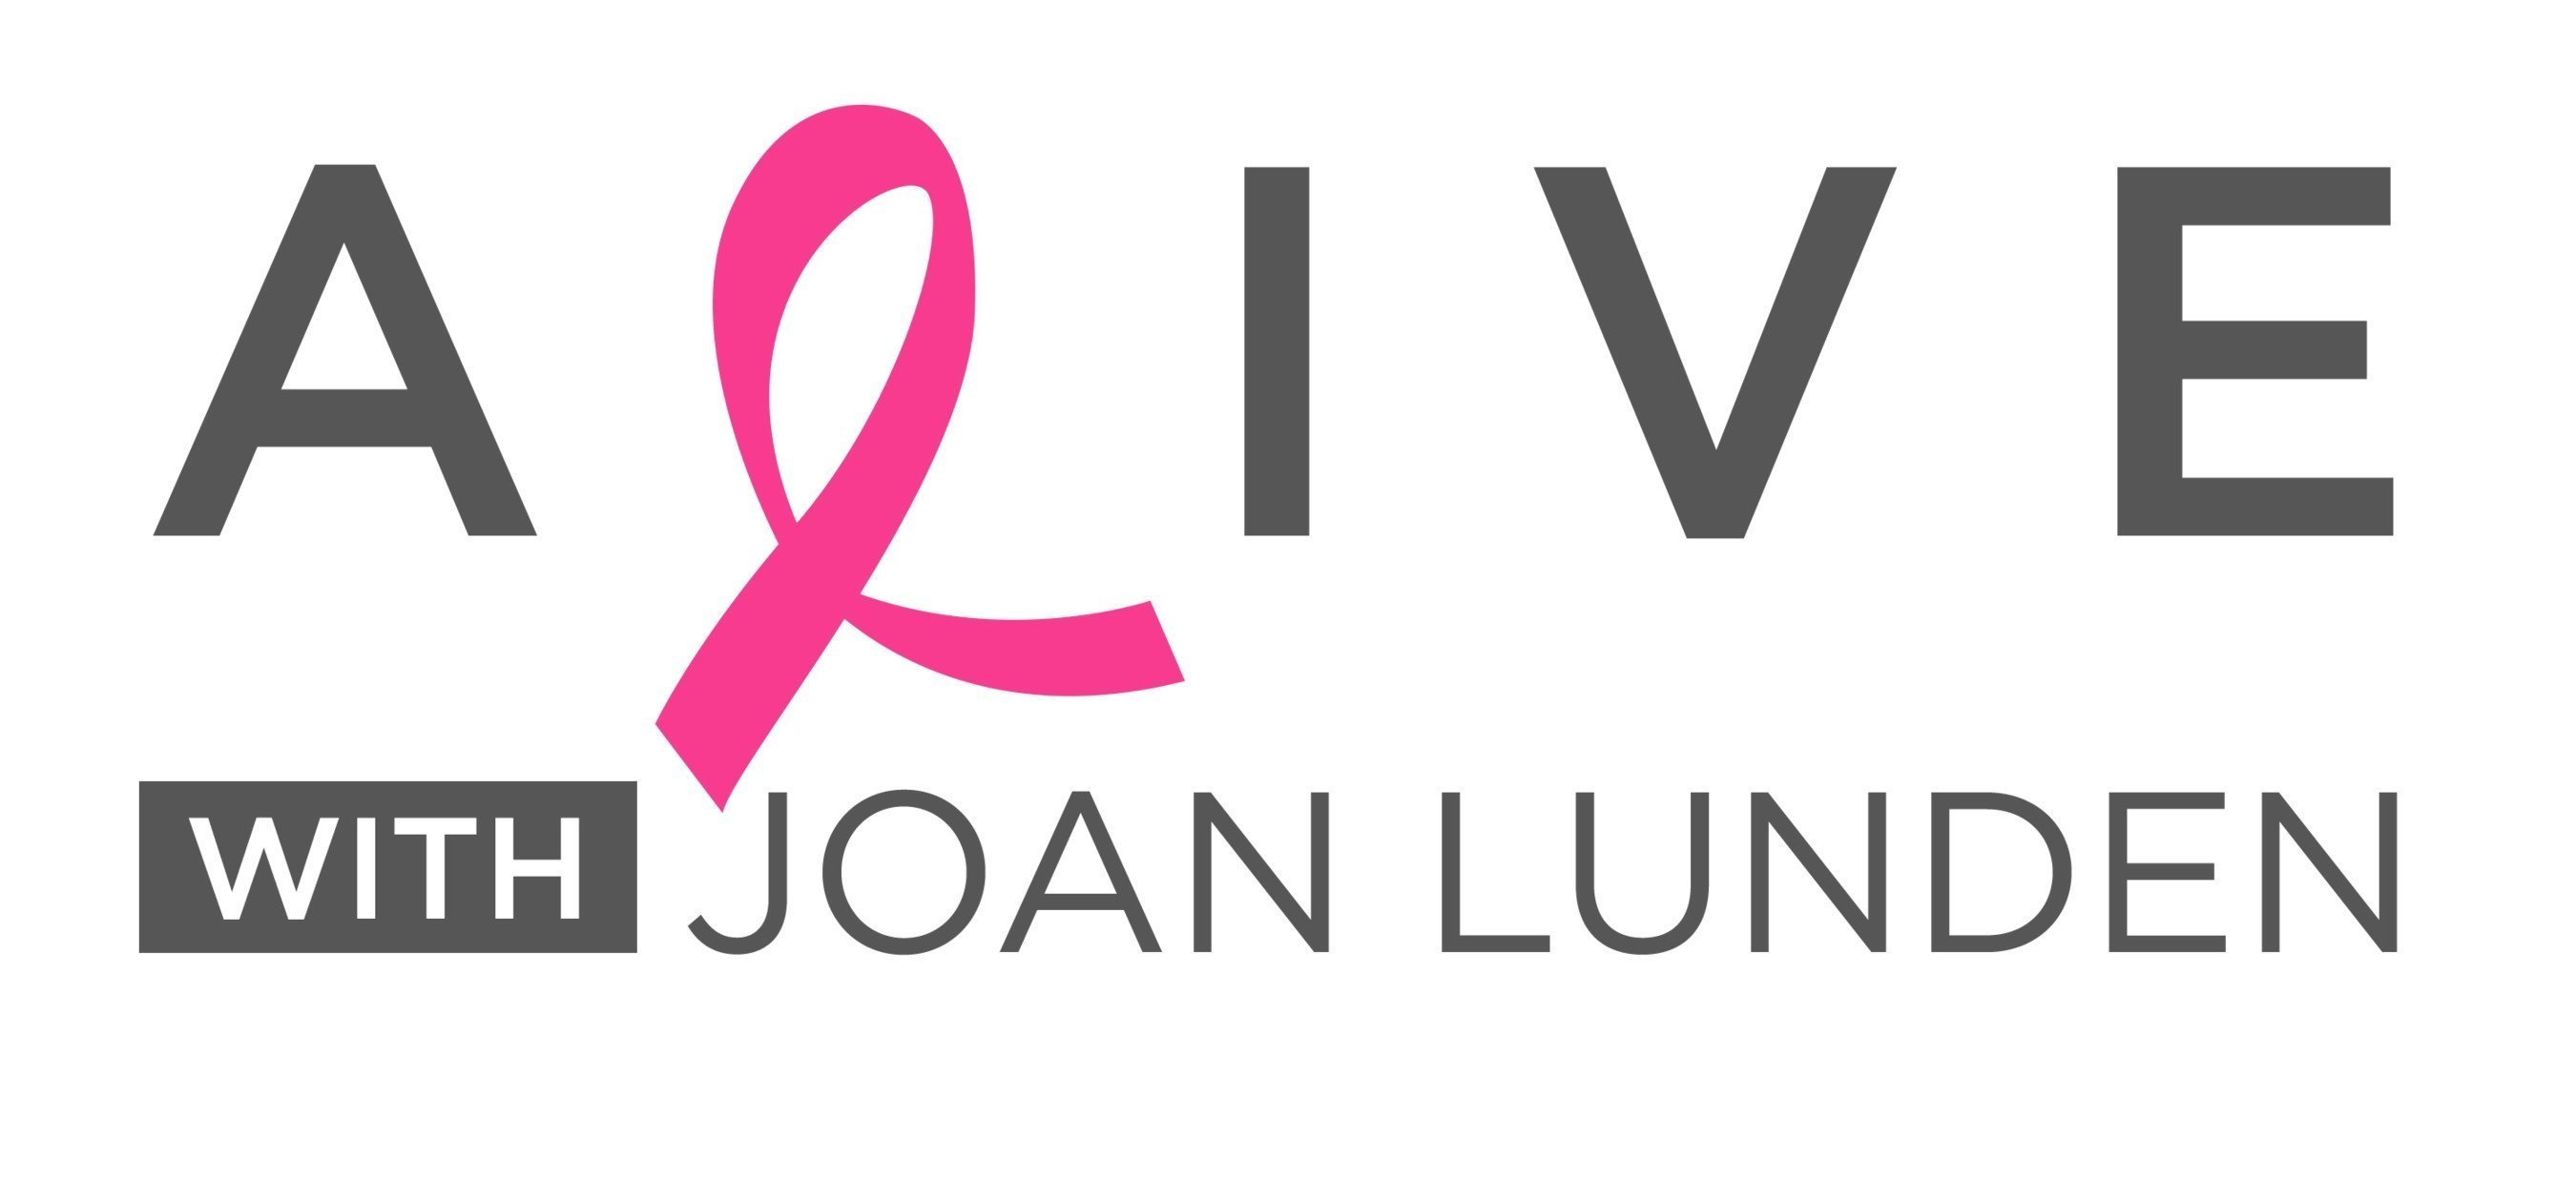 Journalist And Breast Cancer Survivor Joan Lunden Launches 'ALIVE With Joan Lunden' The First 24/7 Network Dedicated To Breast Cancer And Women's Health